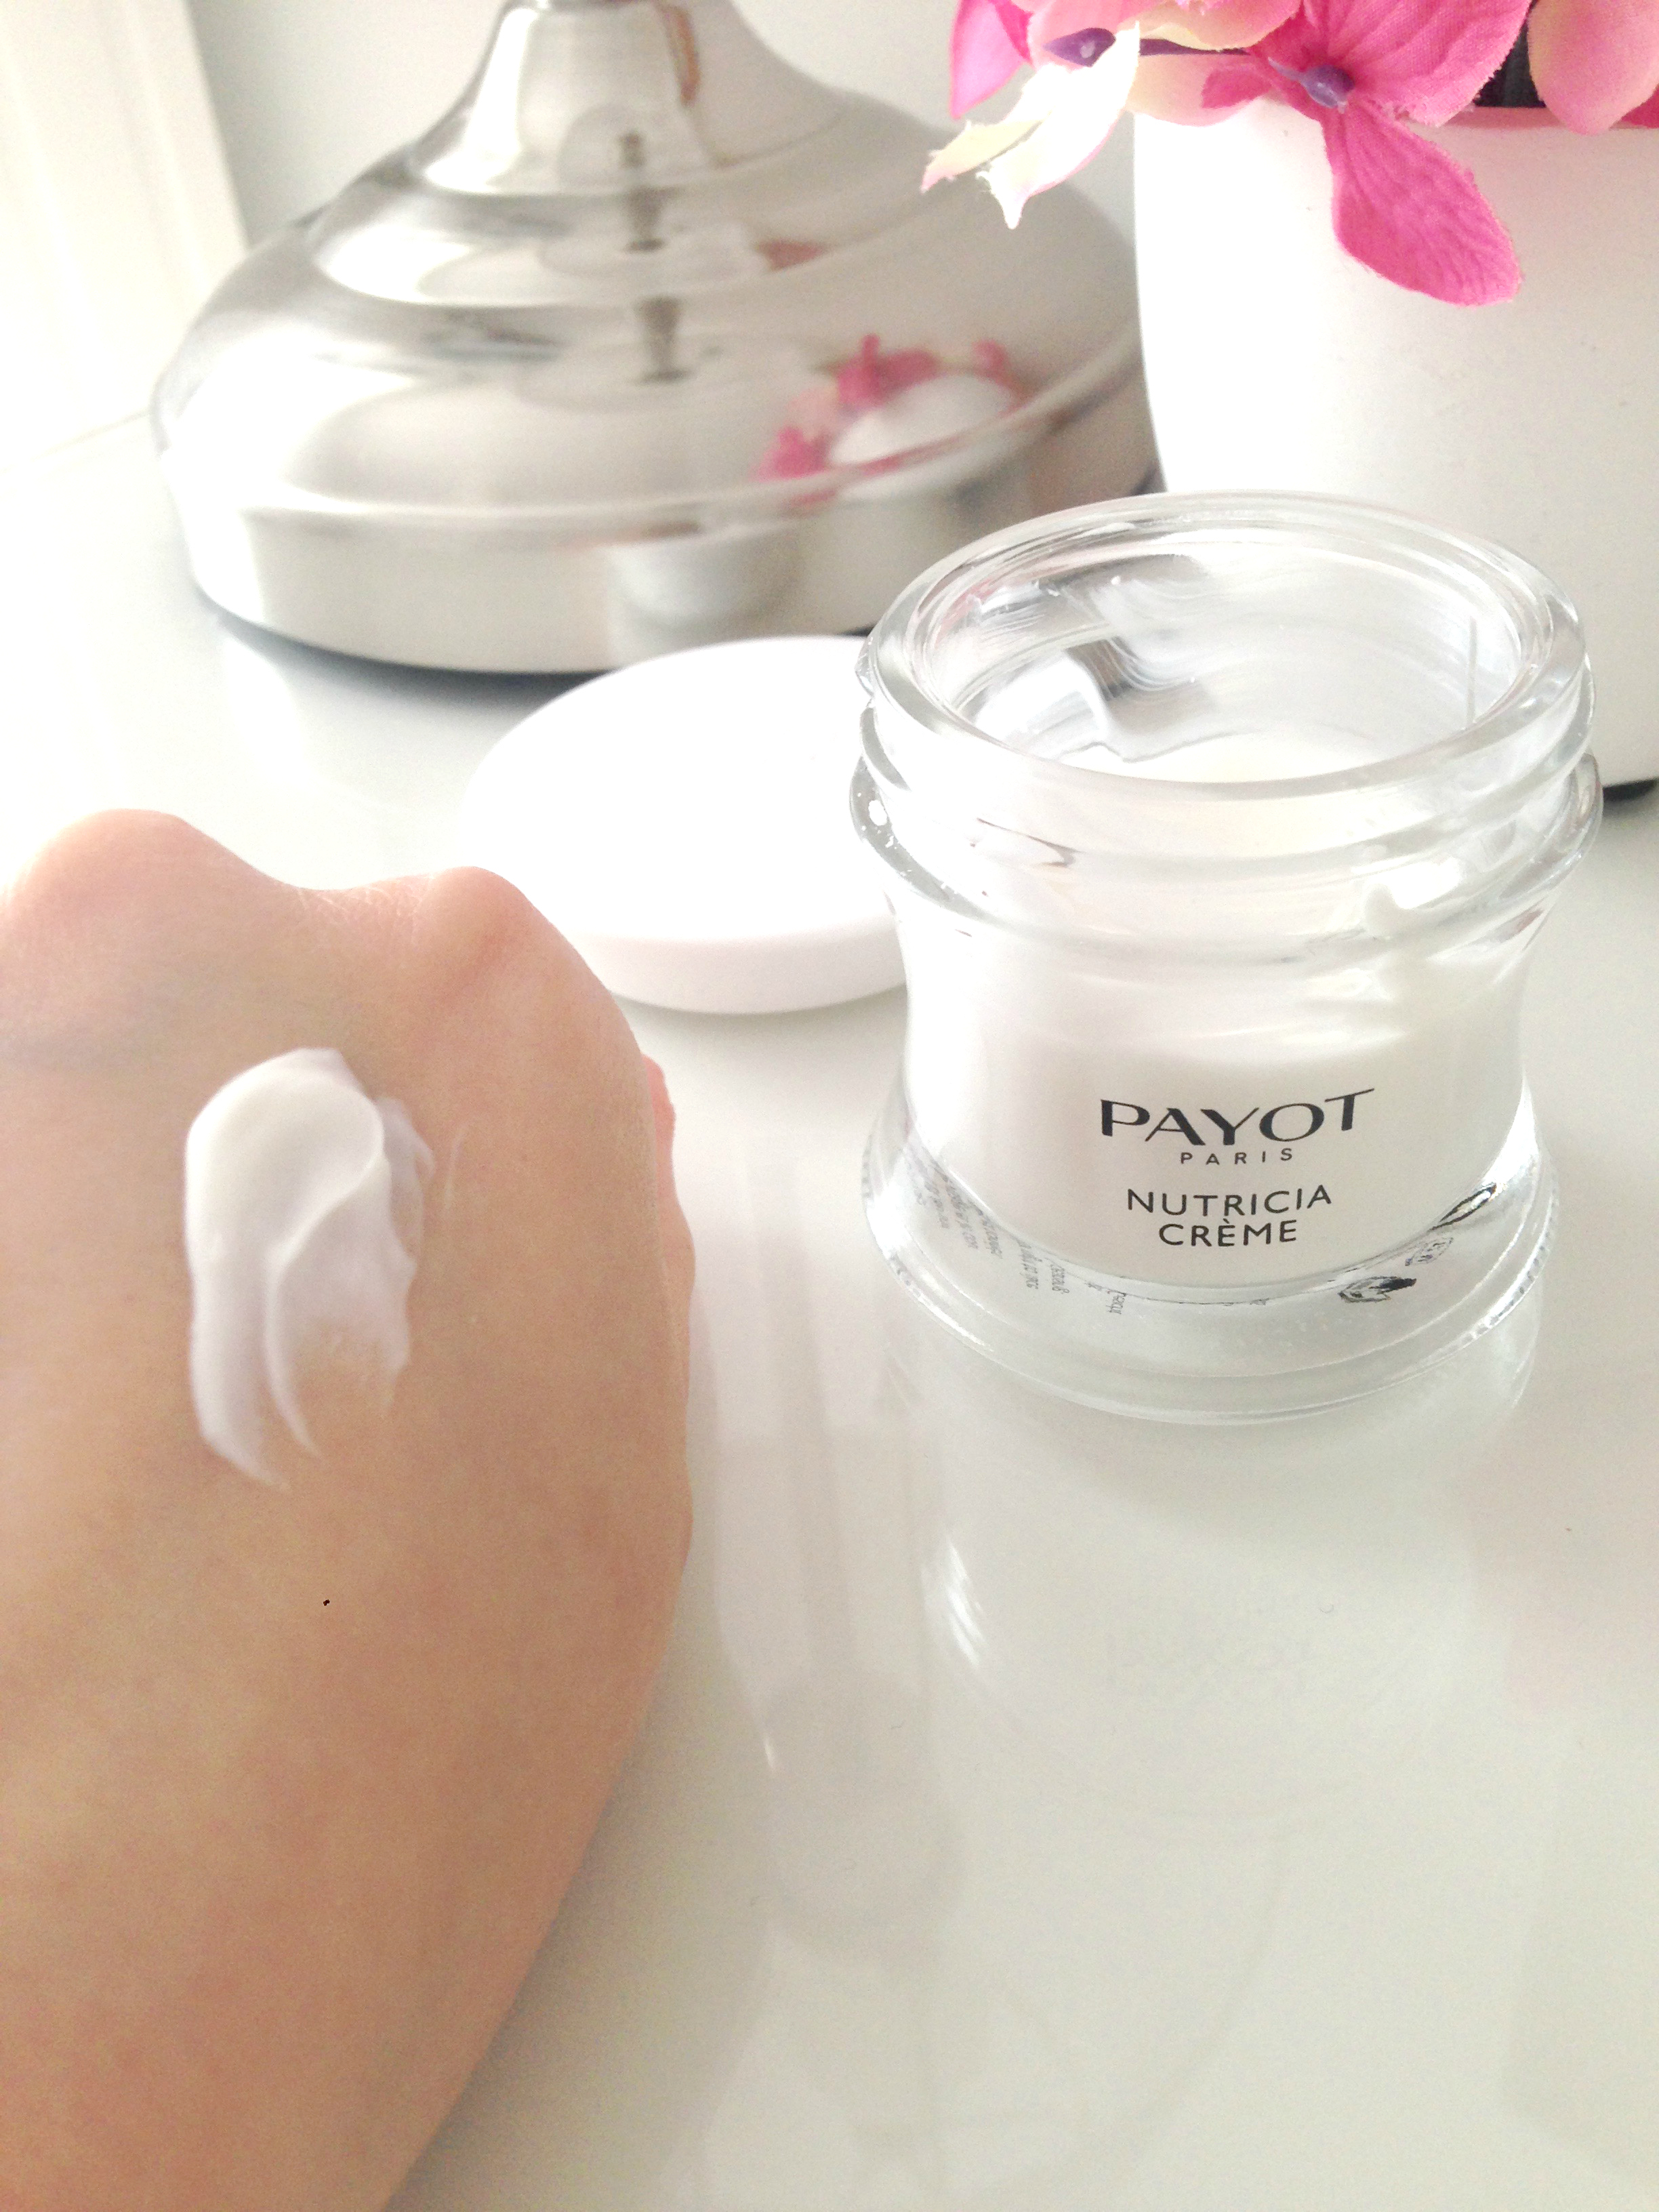 PAYOT Nutricia creme 03.jpg